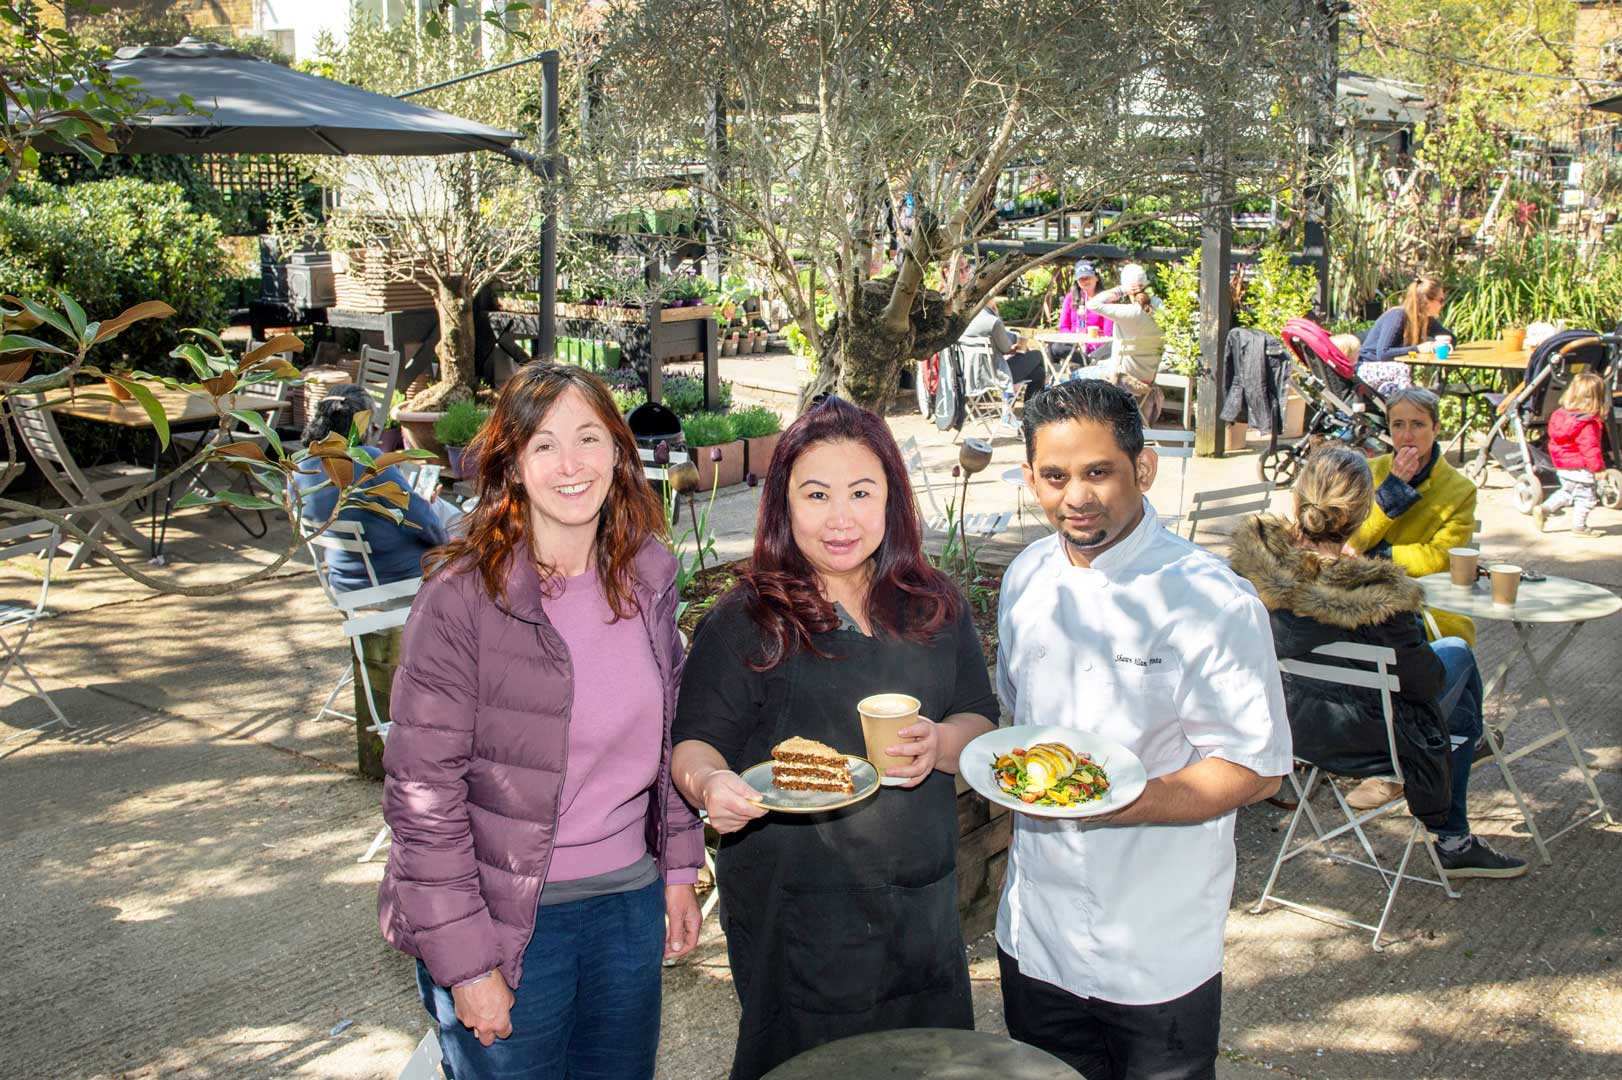 W6 Garden Centre and Café: At The Heart Of The Community